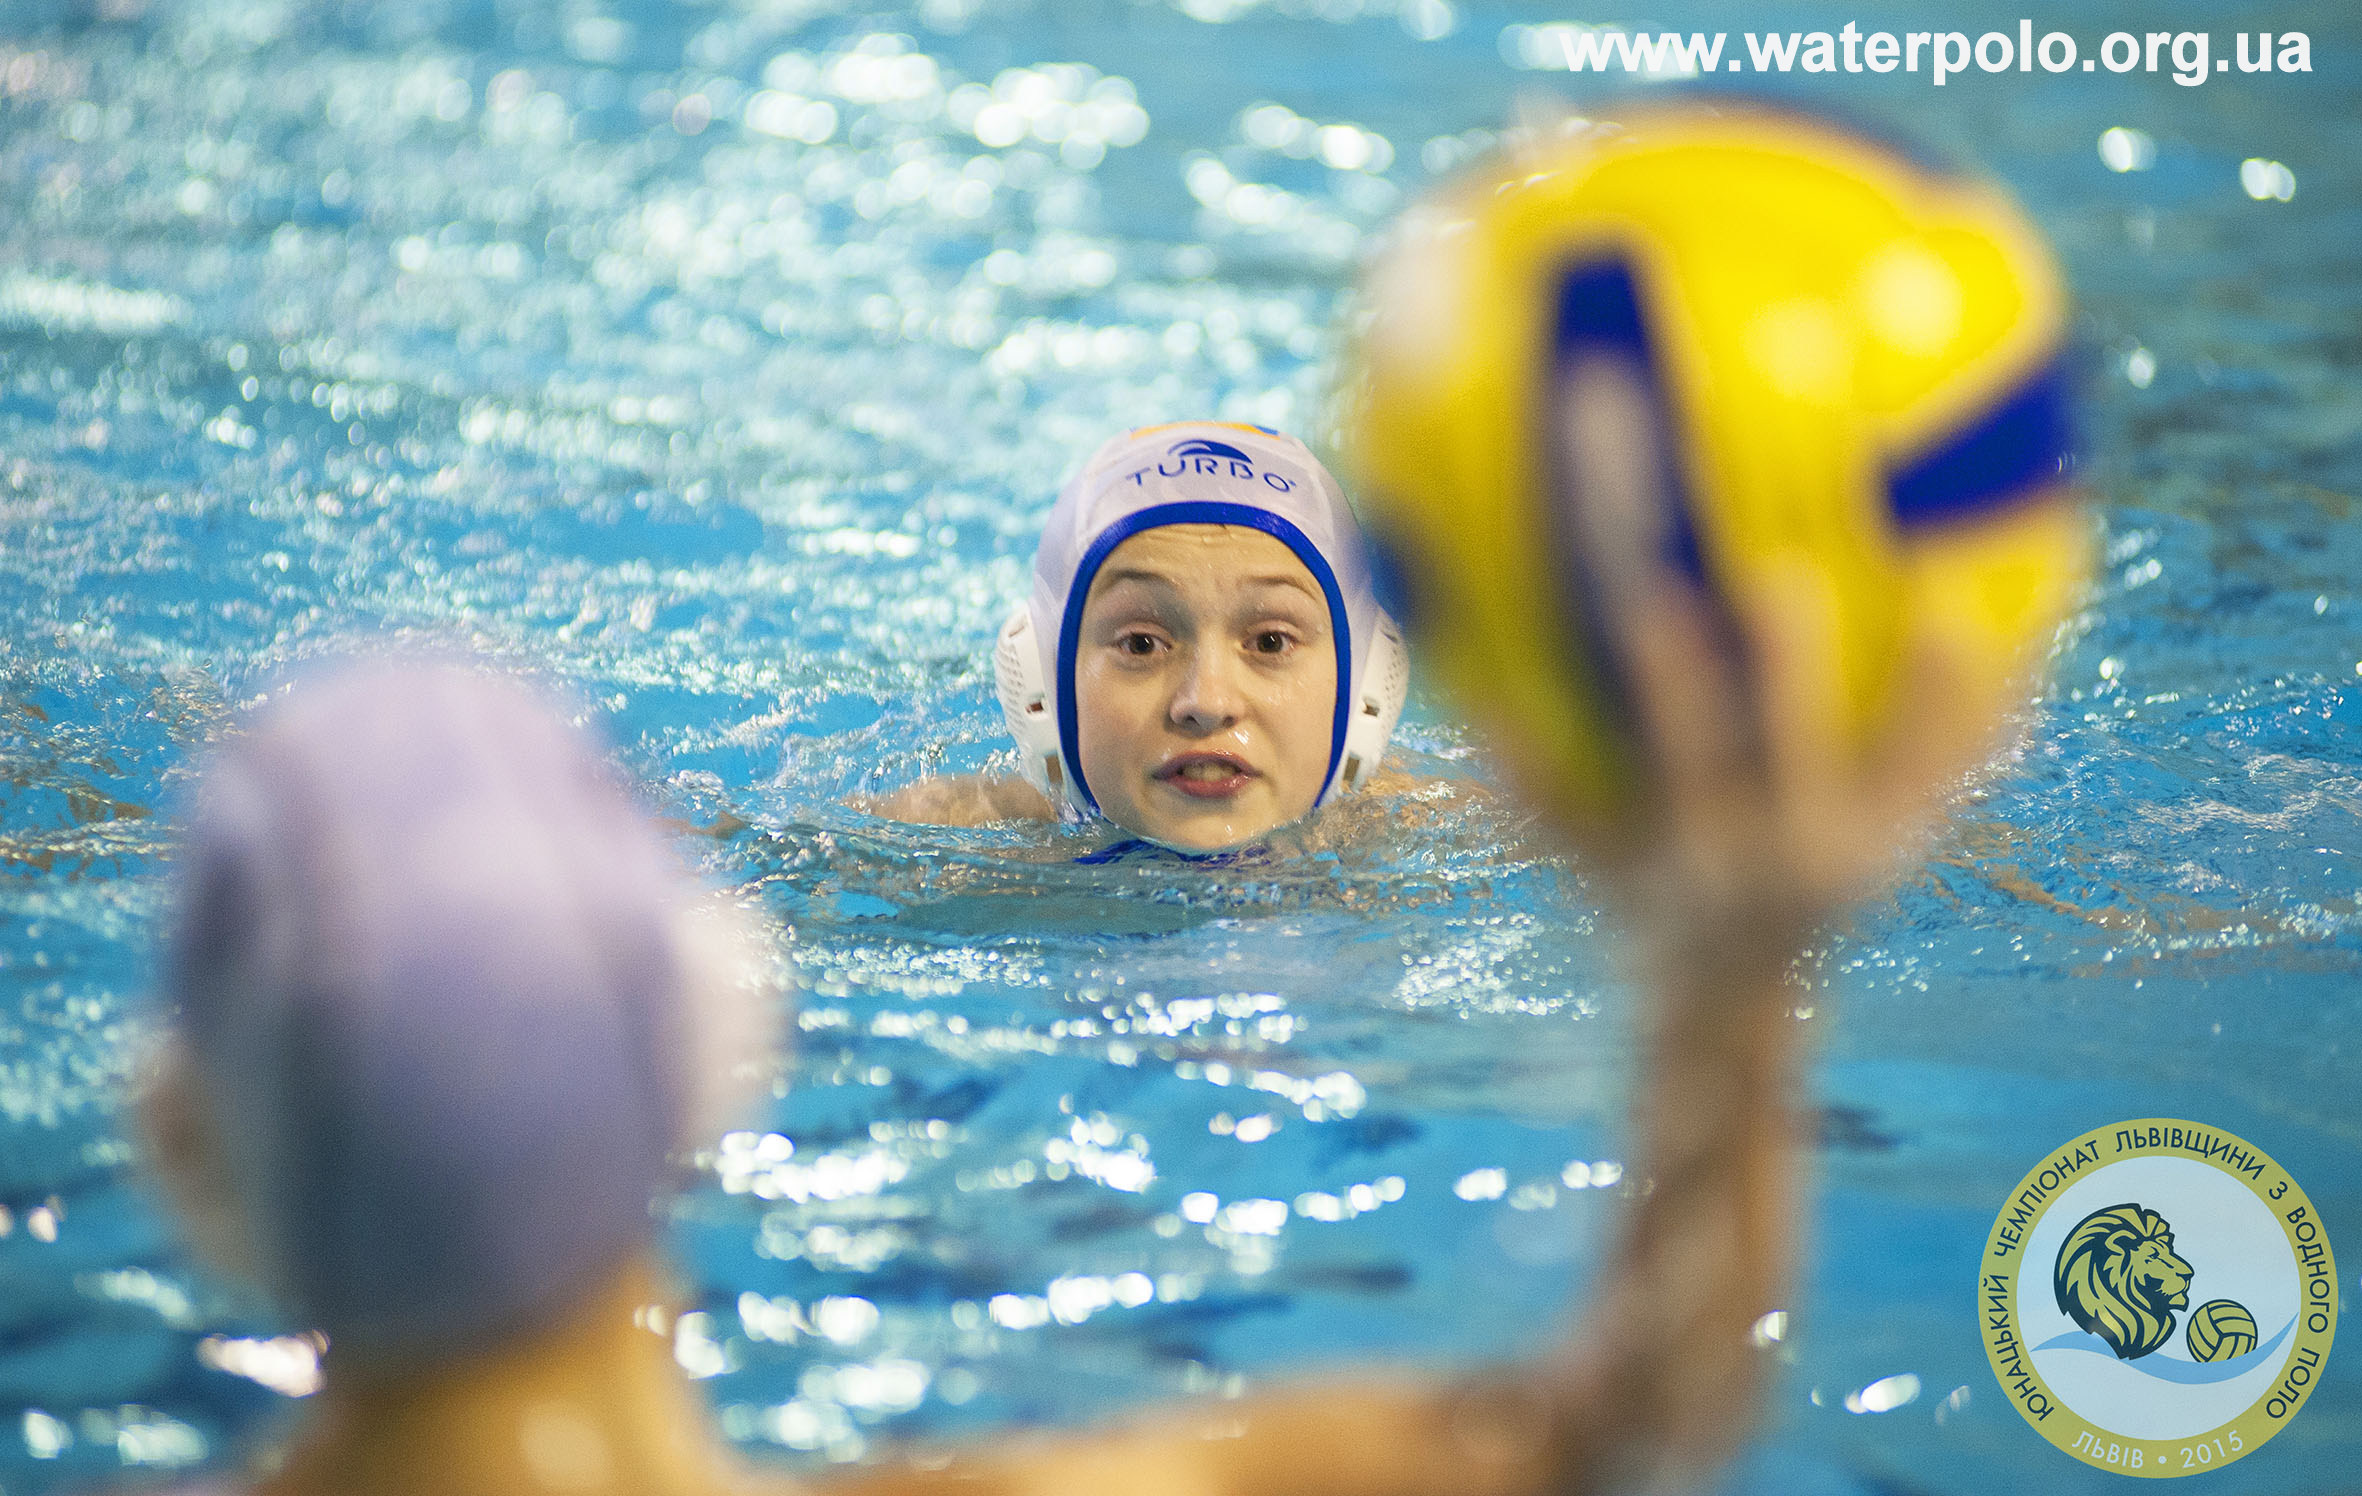 waterpolo_lviv_2014.jpg